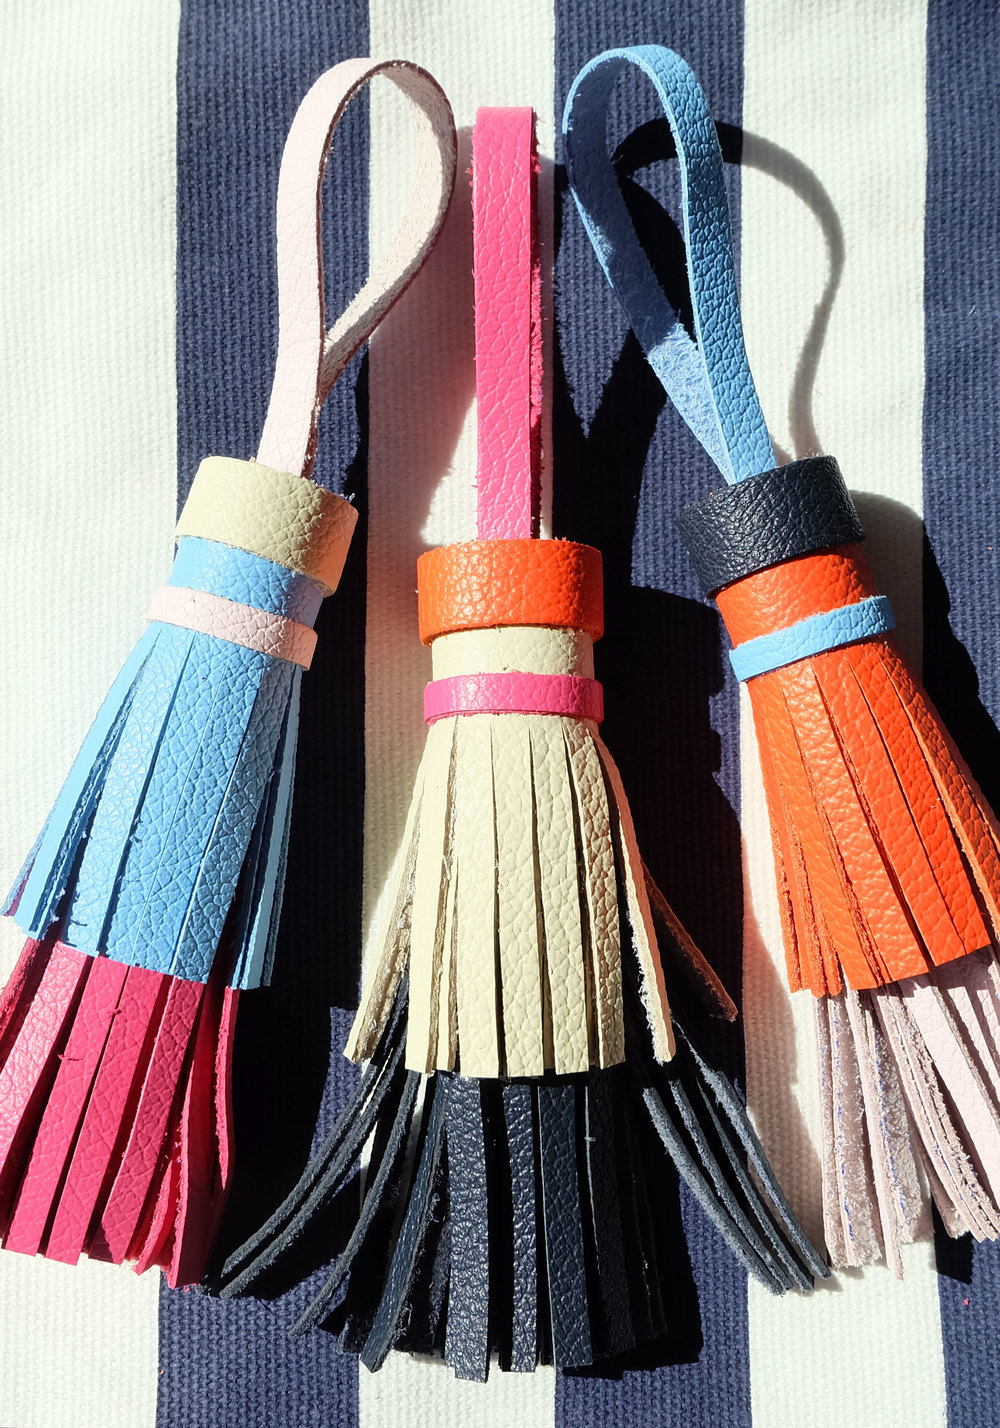 DIY Tory Burch leather tassel key fobs!